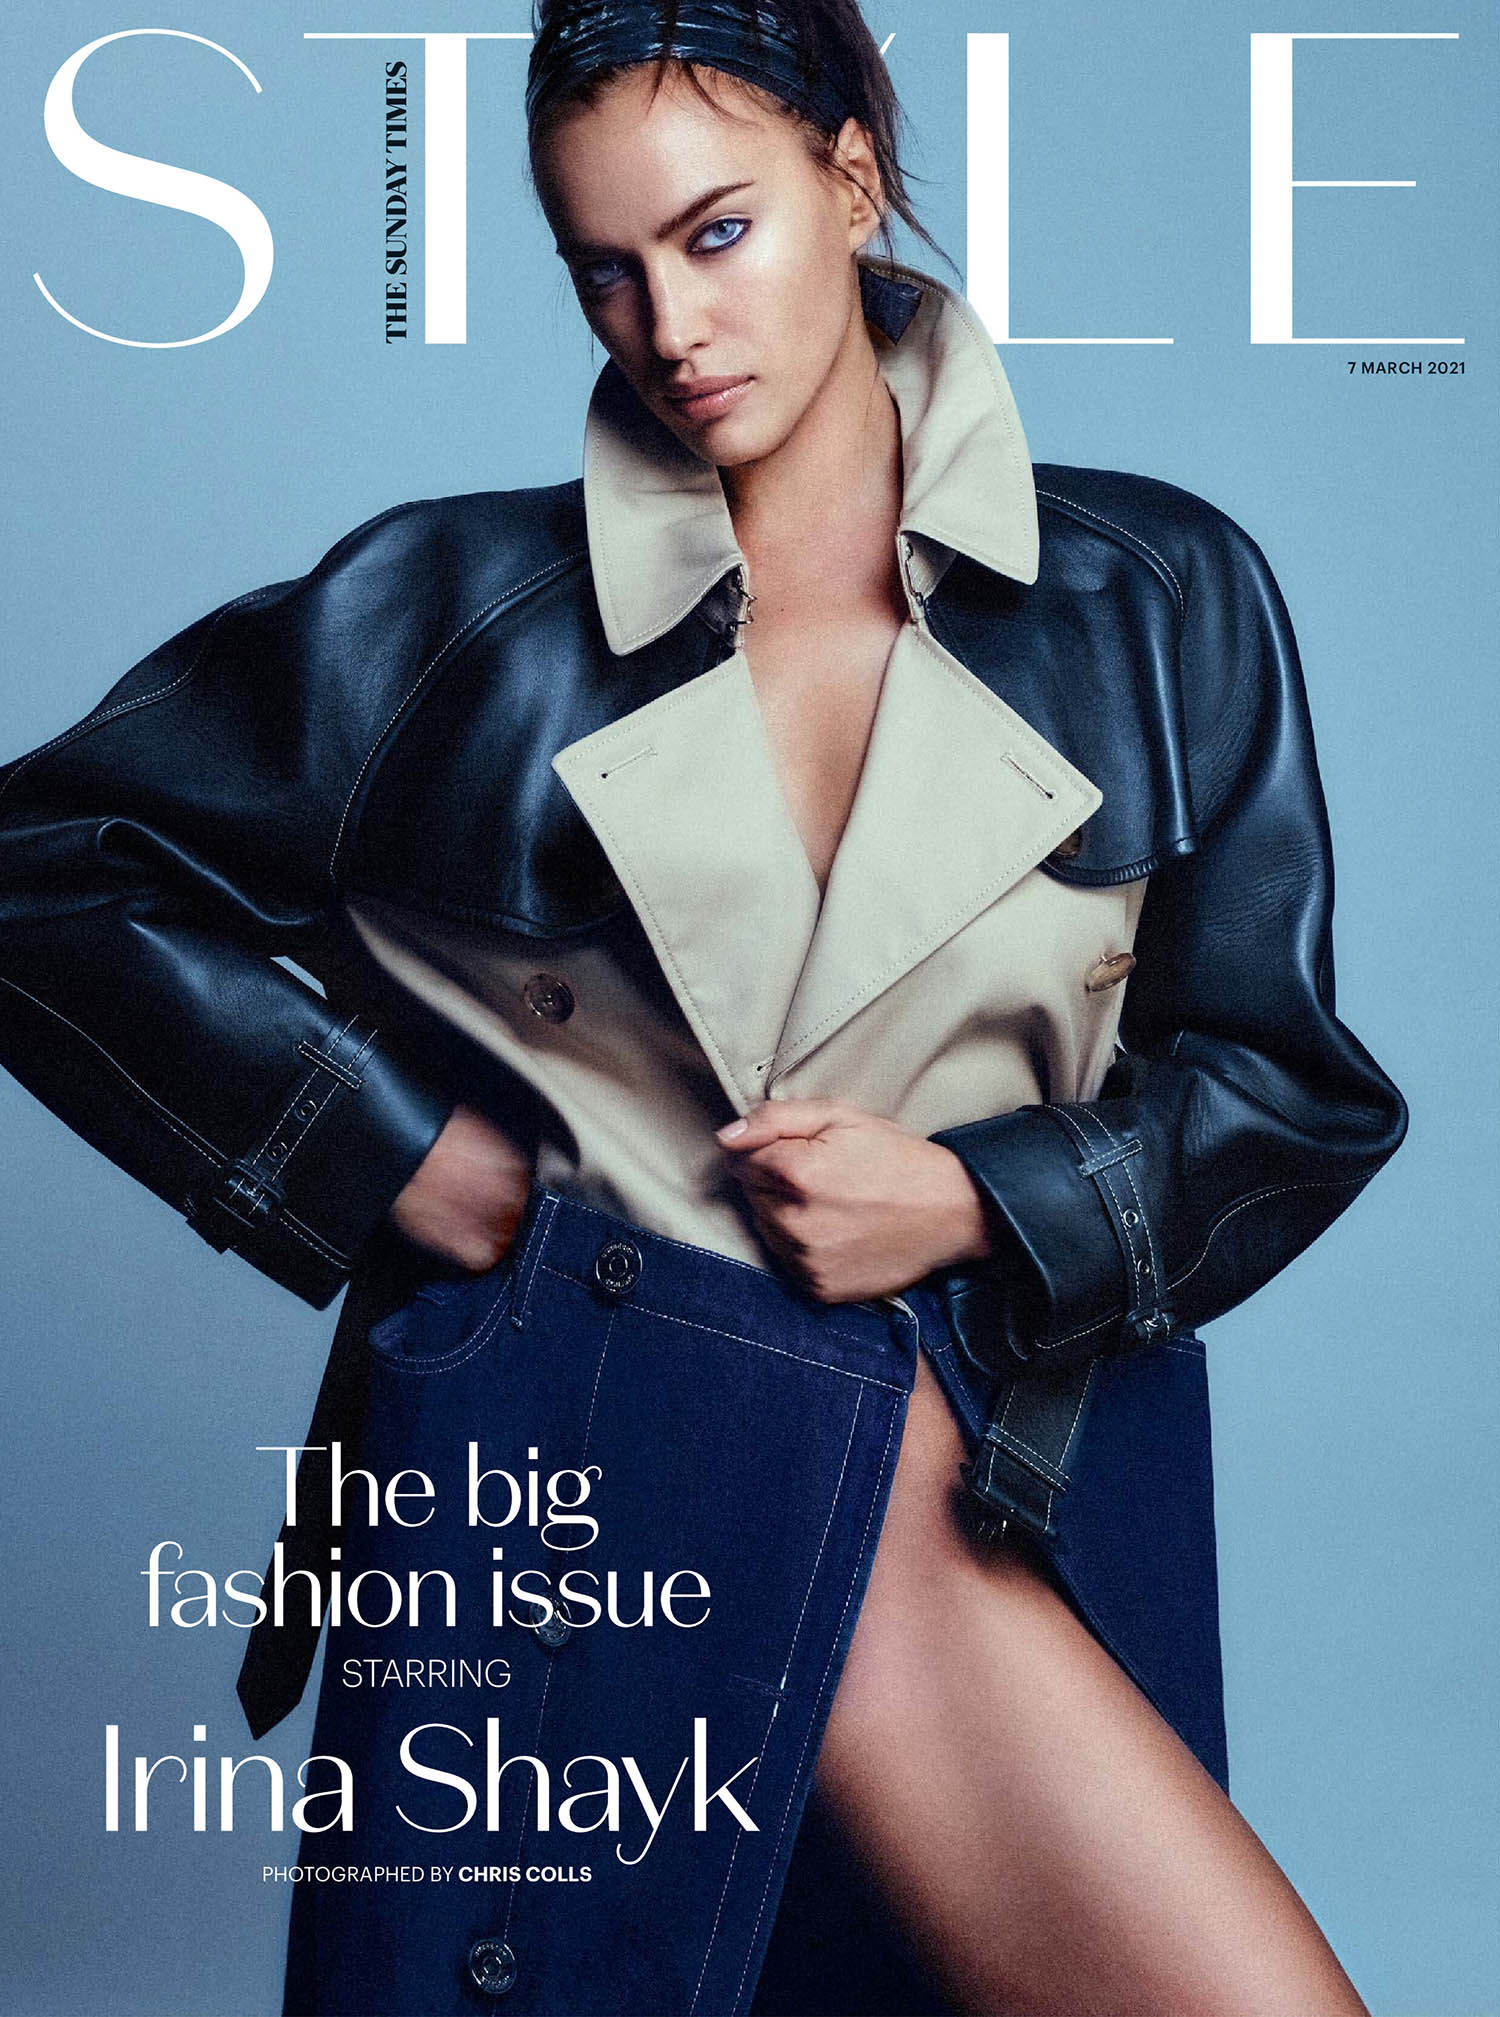 Irina Shayk covers The Sunday Times Style March 7th, 2021 by Chris Colls